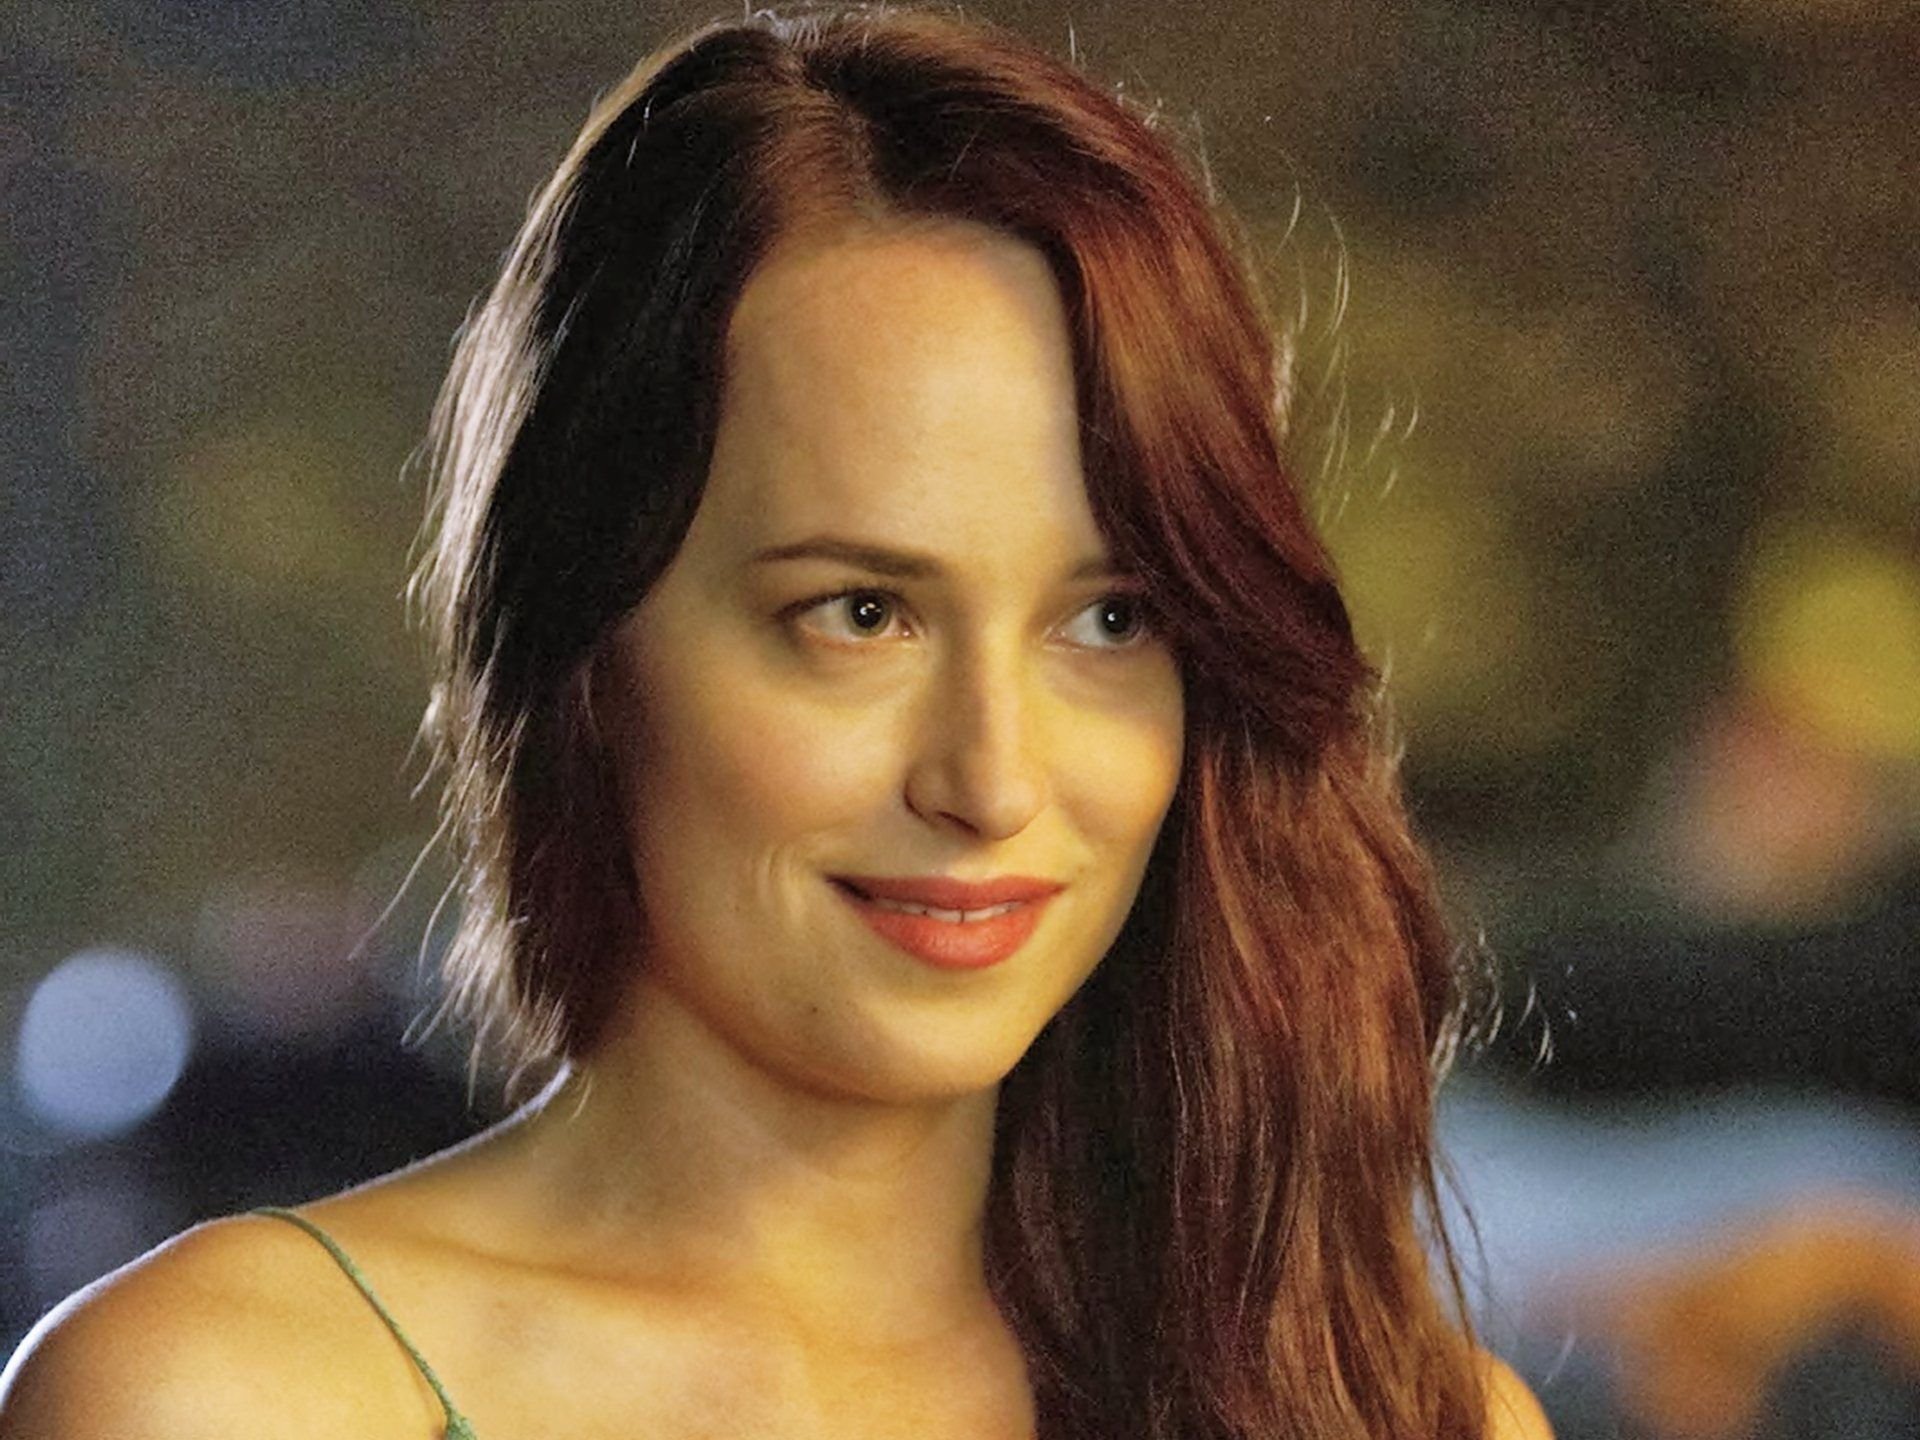 Dakota Johnson Need For Speed Movie Wallpaper Images Pictures